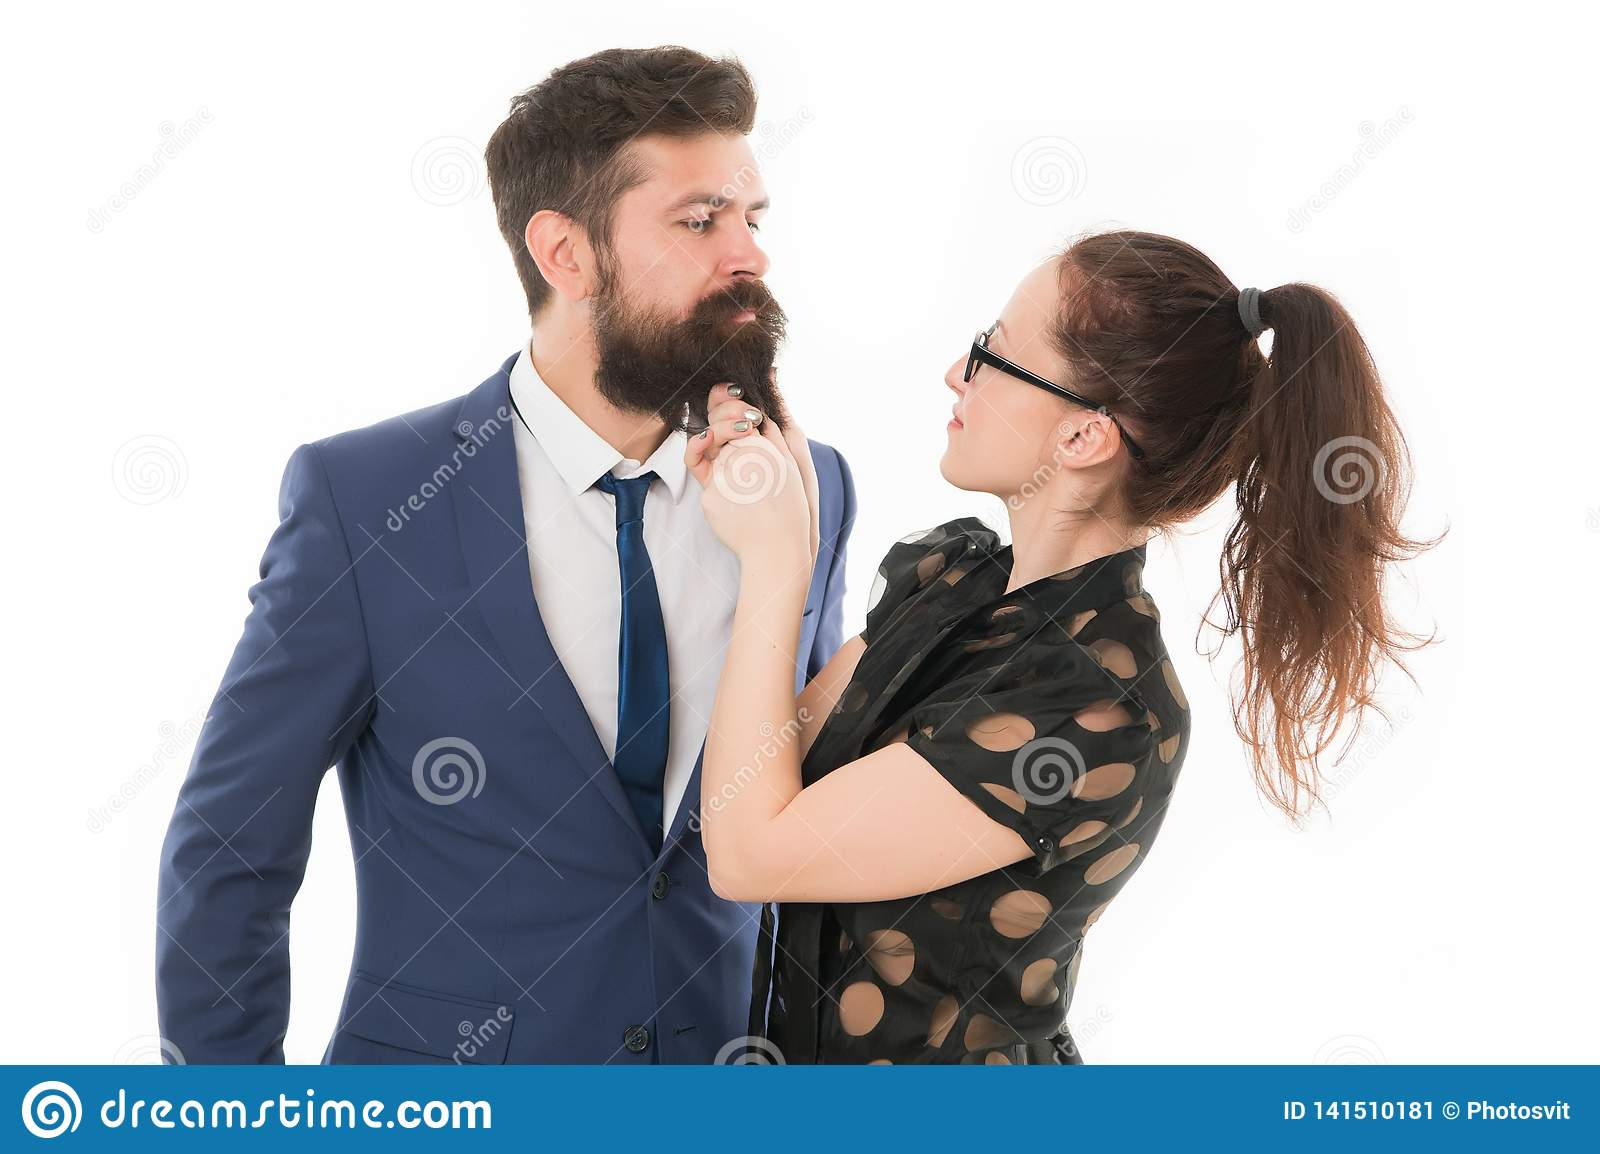 8f95e3469e Art of flirt. secretary flirt. Knowing his dirty secrets. She knows how  achieve success. Colleagues men with beard and pretty women flirting.